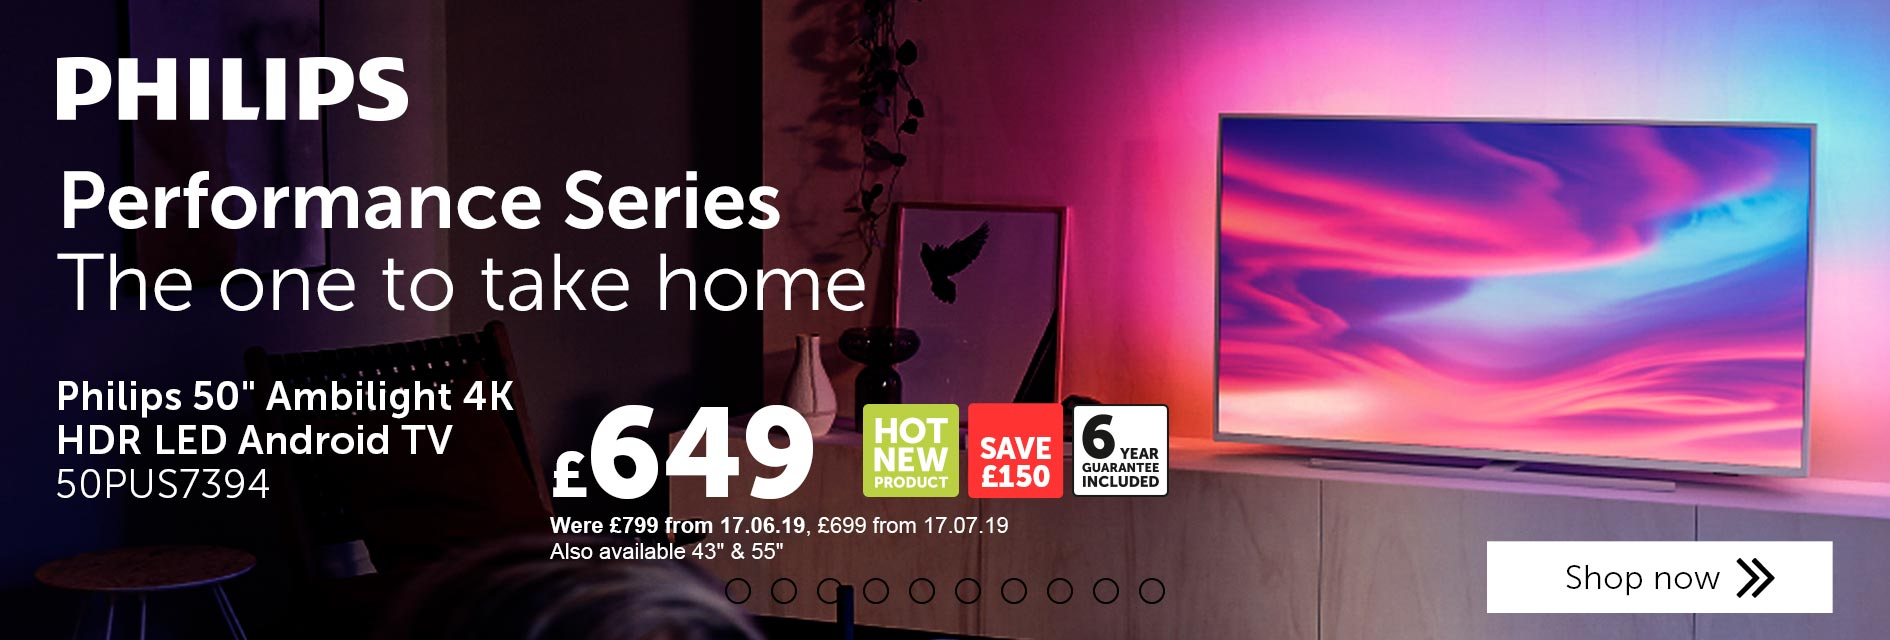 Philips performance series. The one to take home. Find out more.